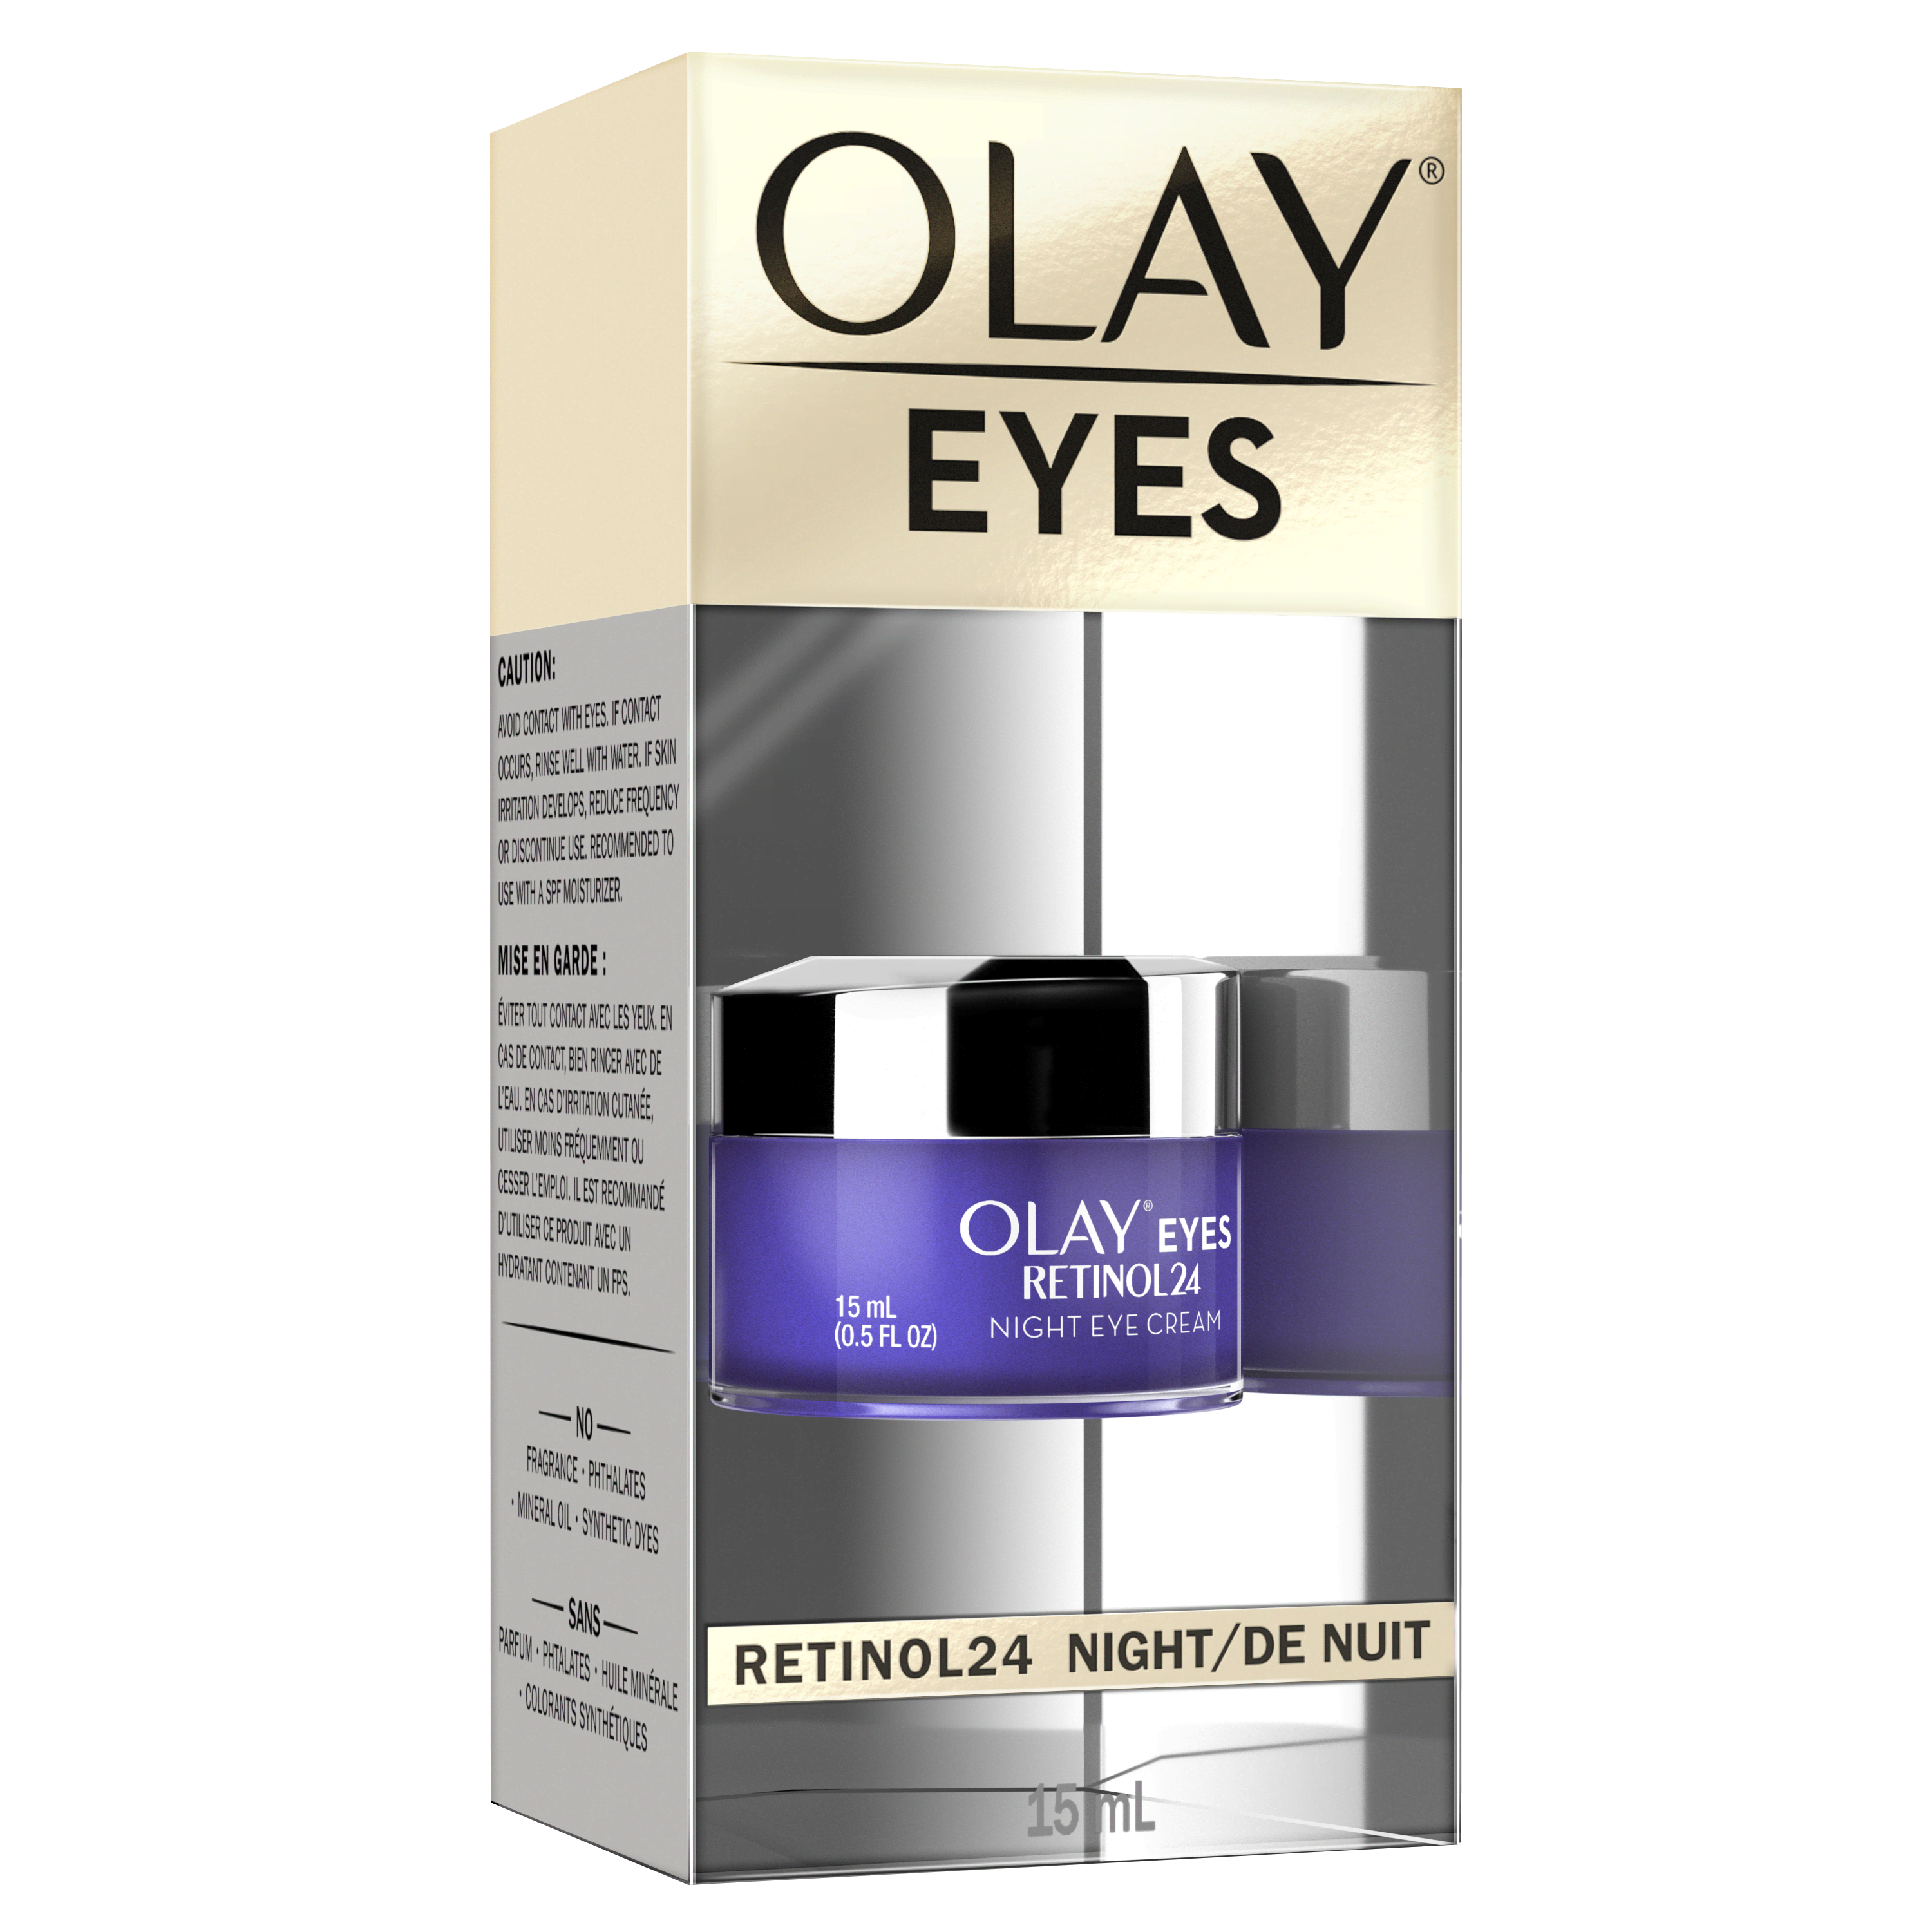 Olay Eyes Retinol24 Night Eye Cream 15 mL_1